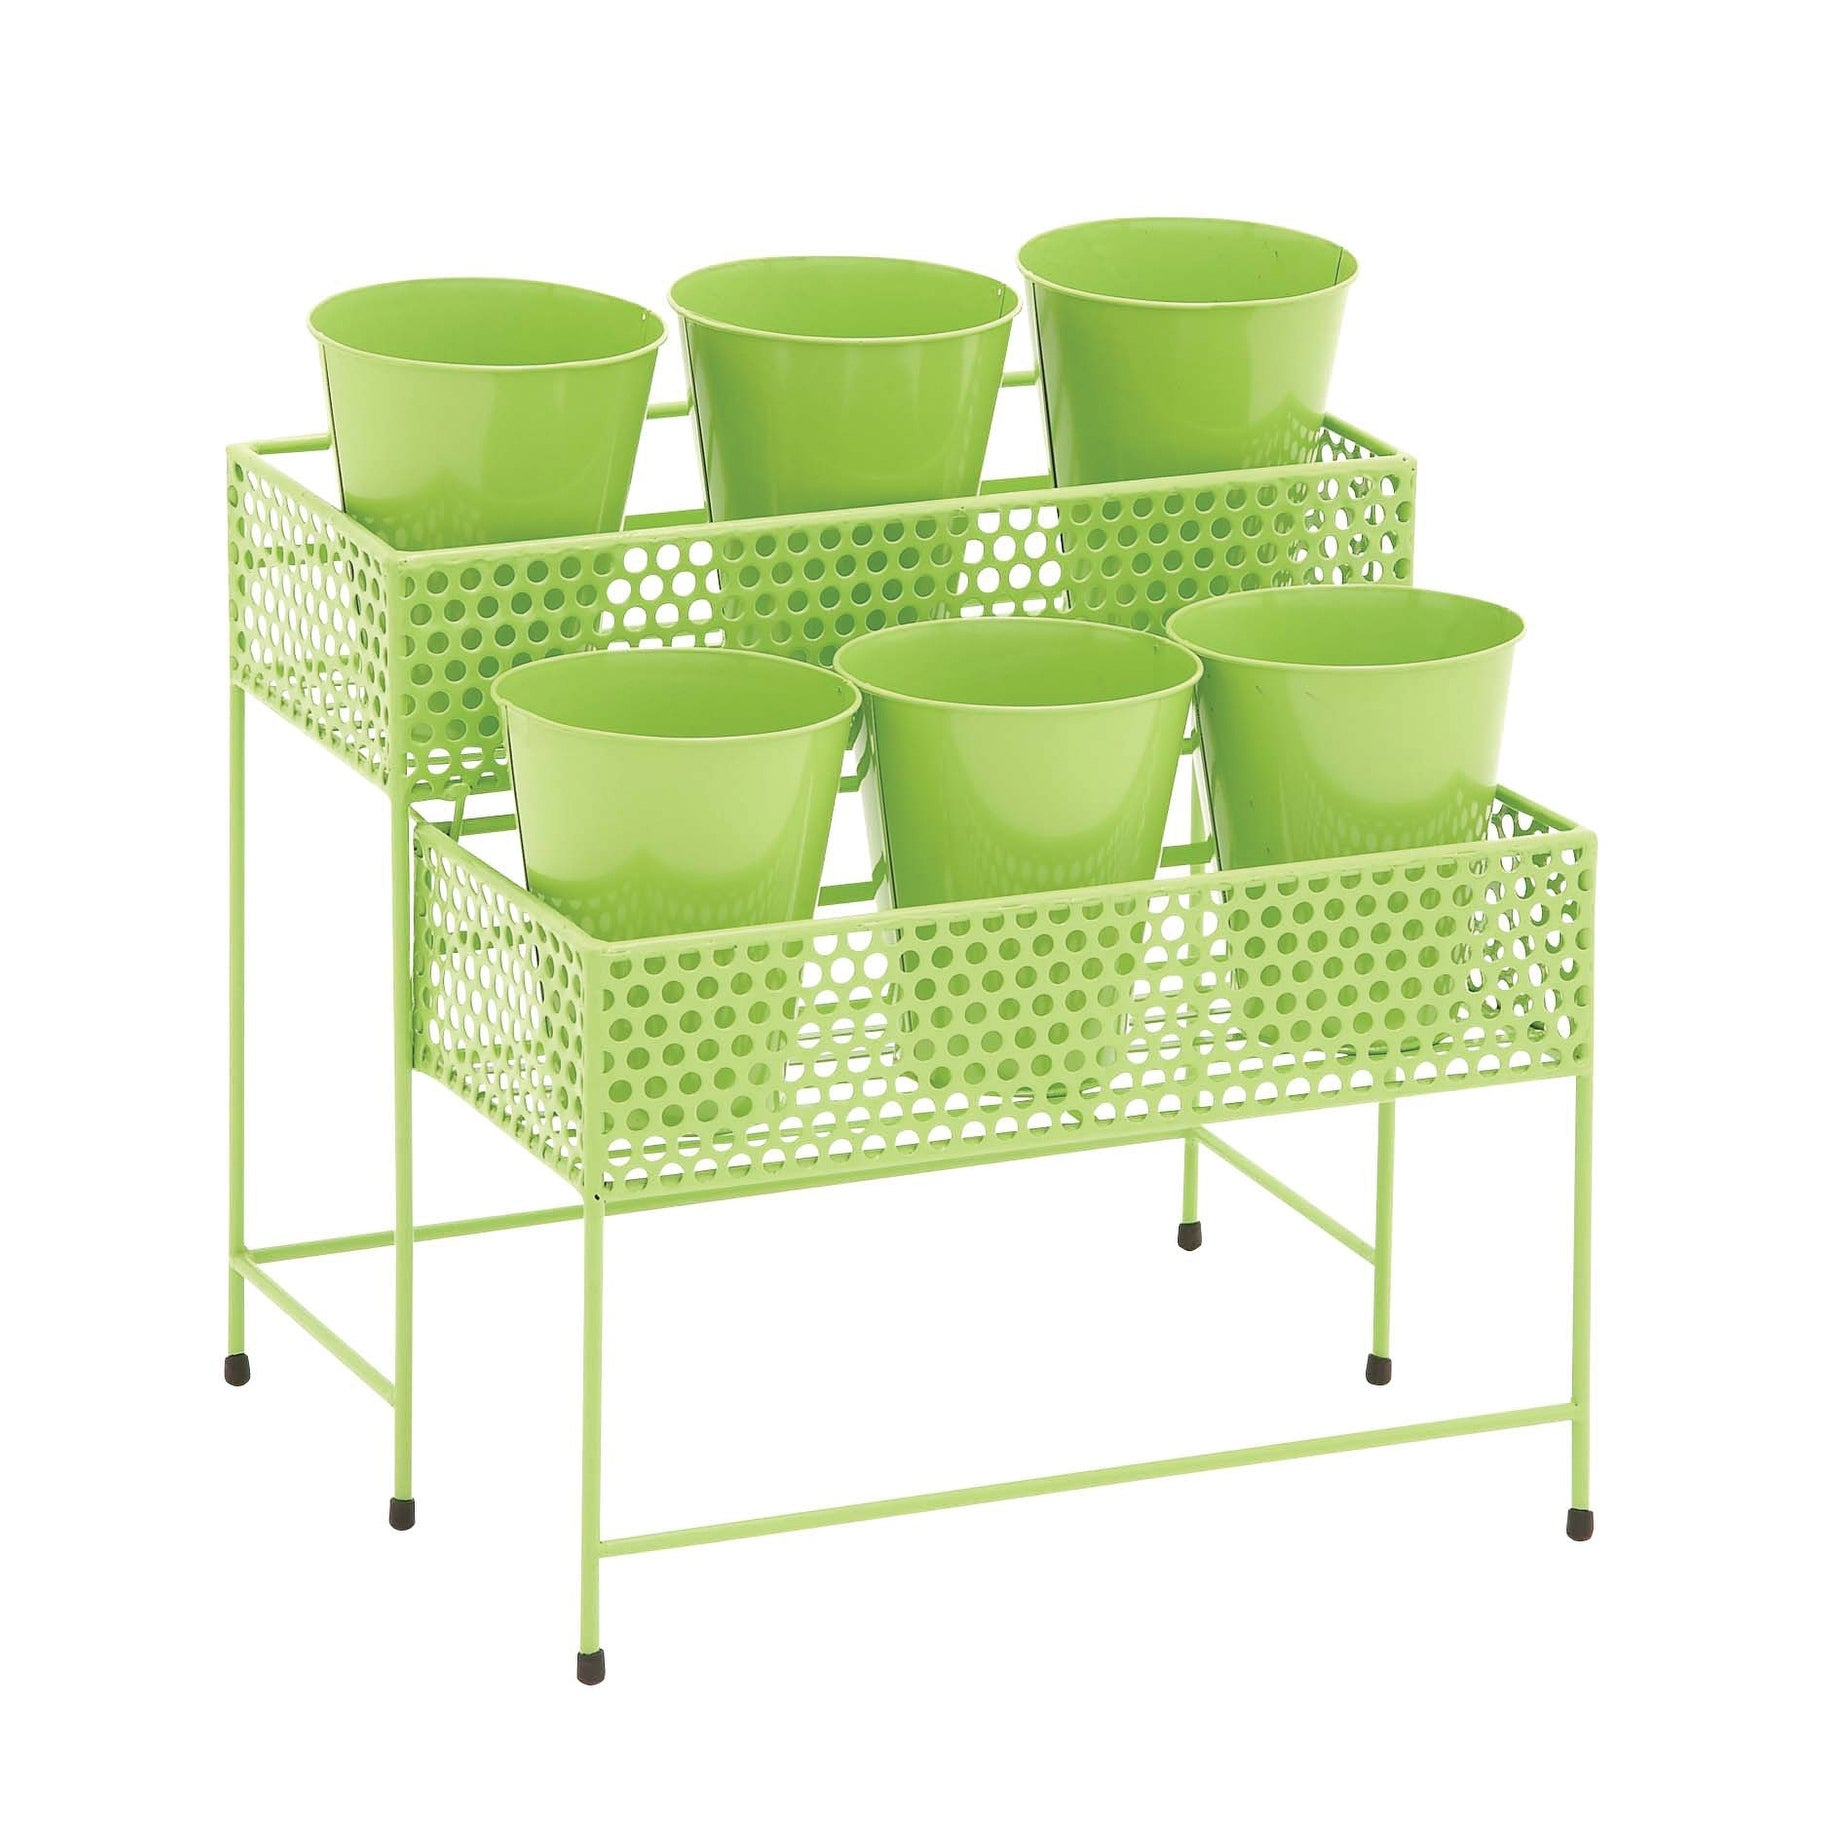 Studio 350 17-inch Metal 2-tier Green Plant Stand #28941,...